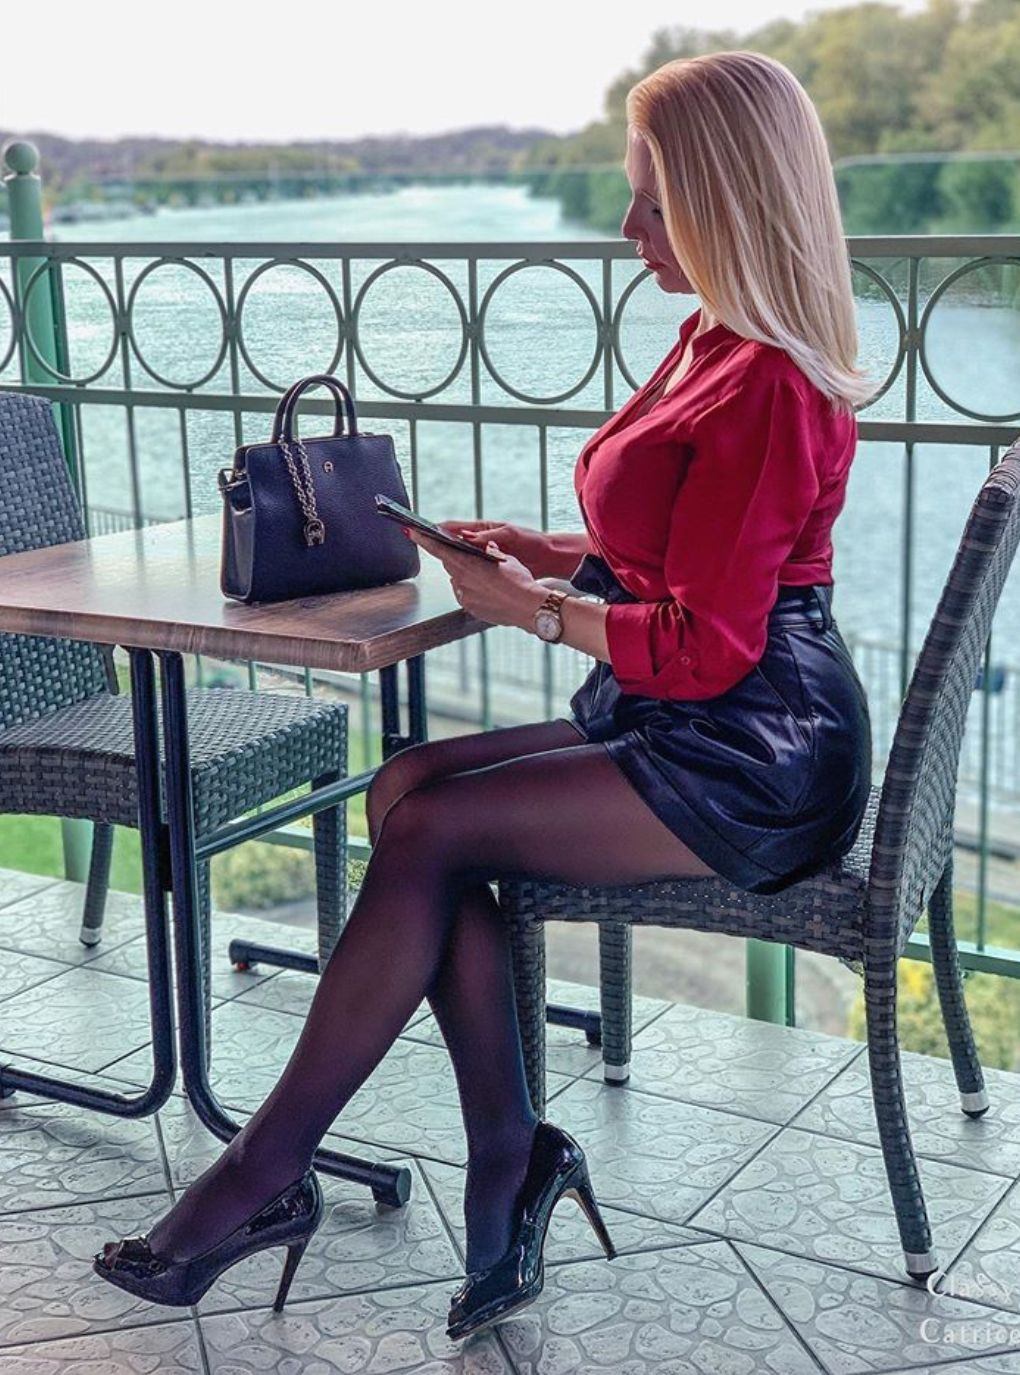 Colour outfit with stocking, shorts, tights